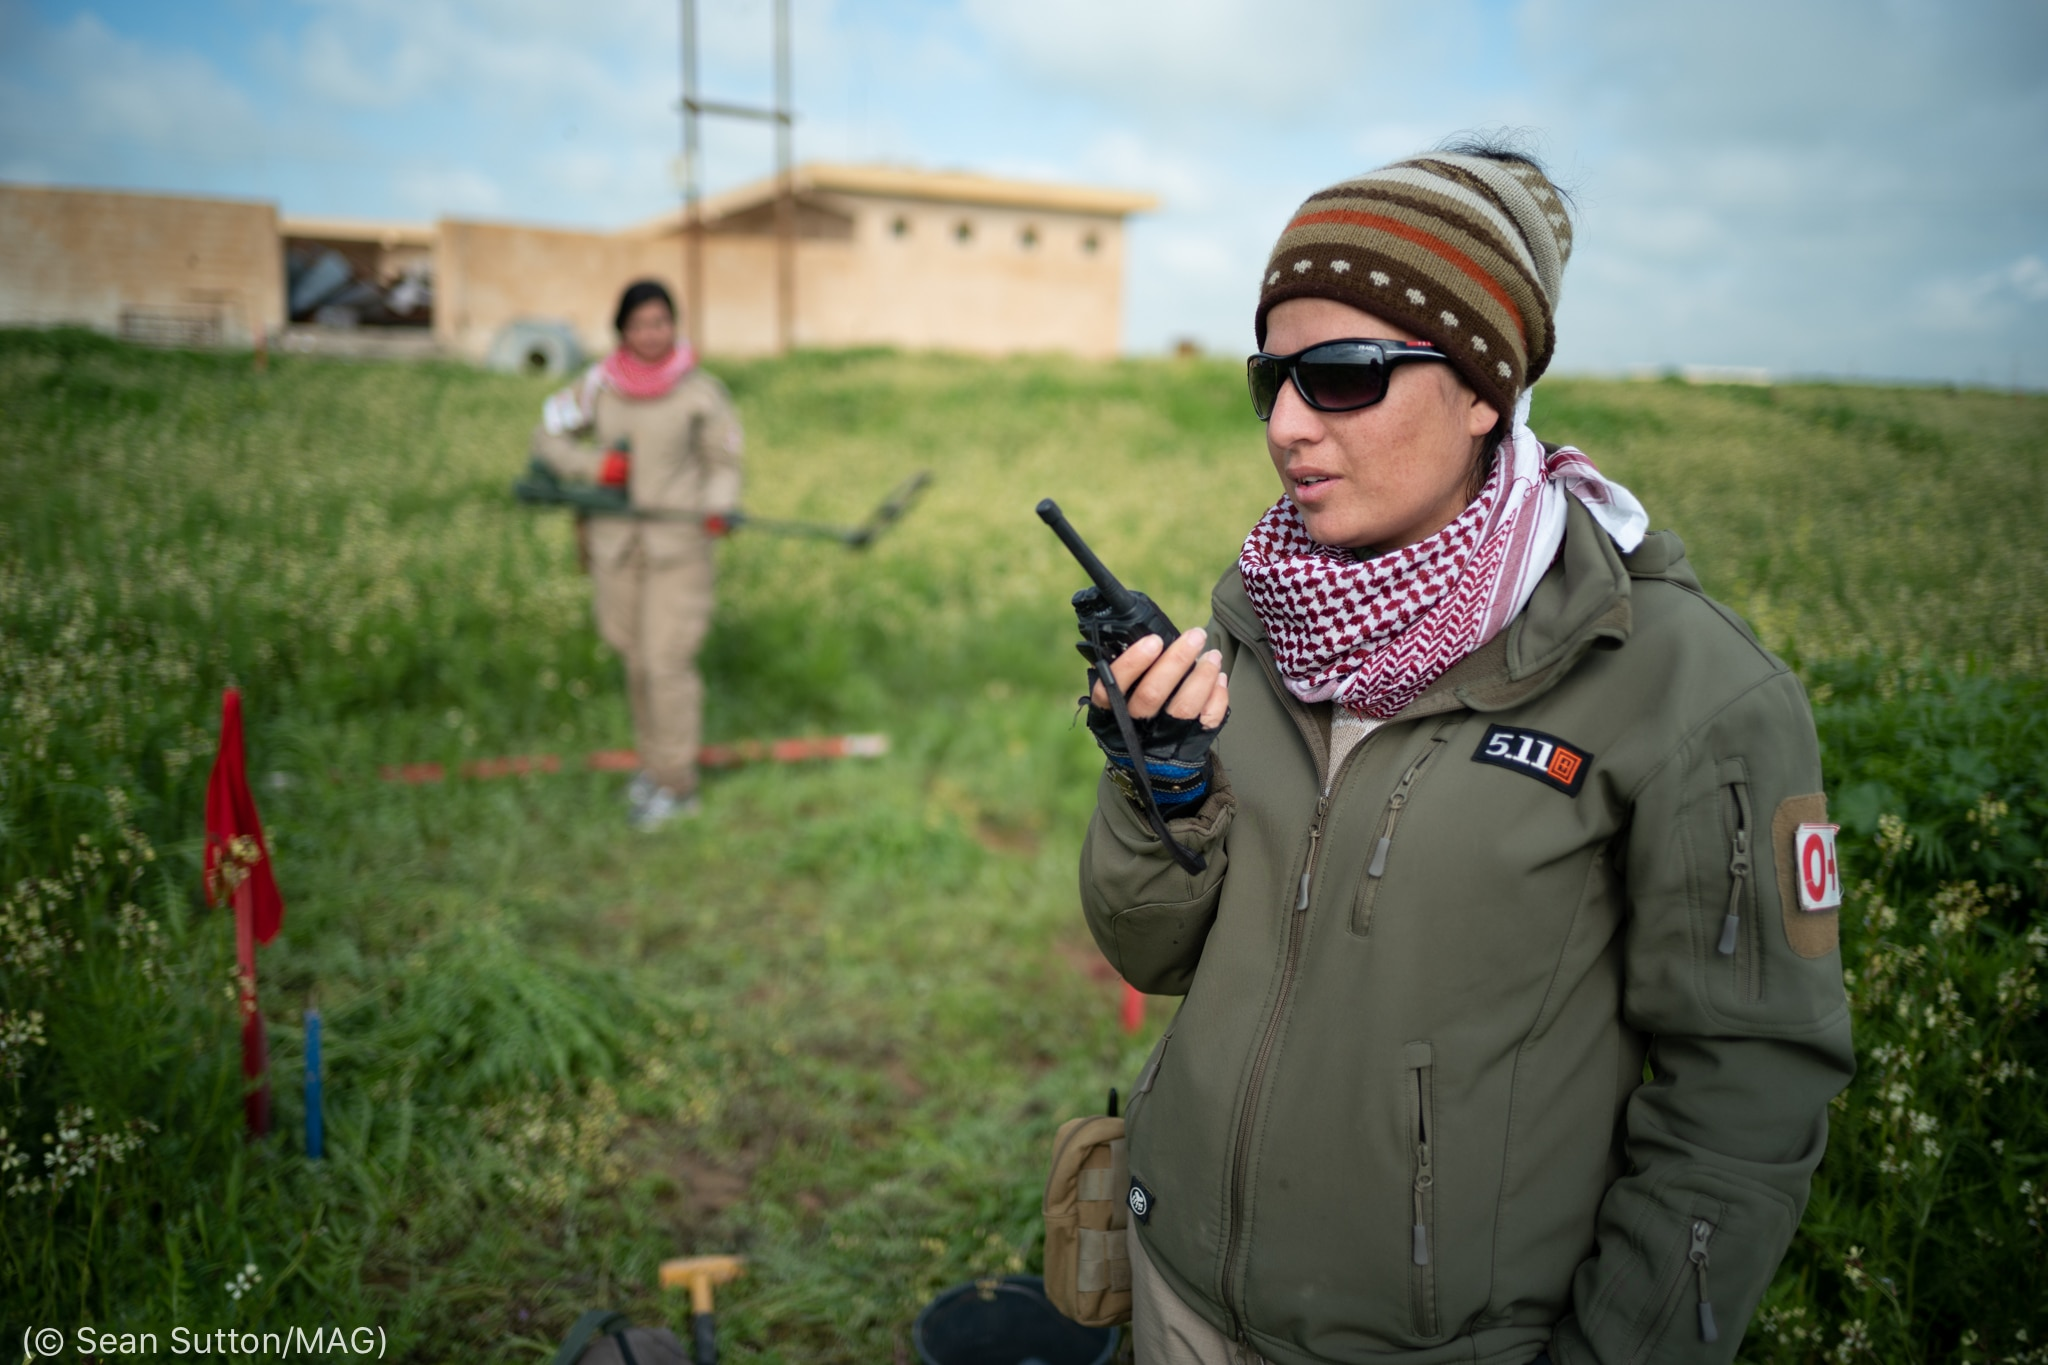 Women in field holding radio and metal detector (© Sean Sutton/MAG)